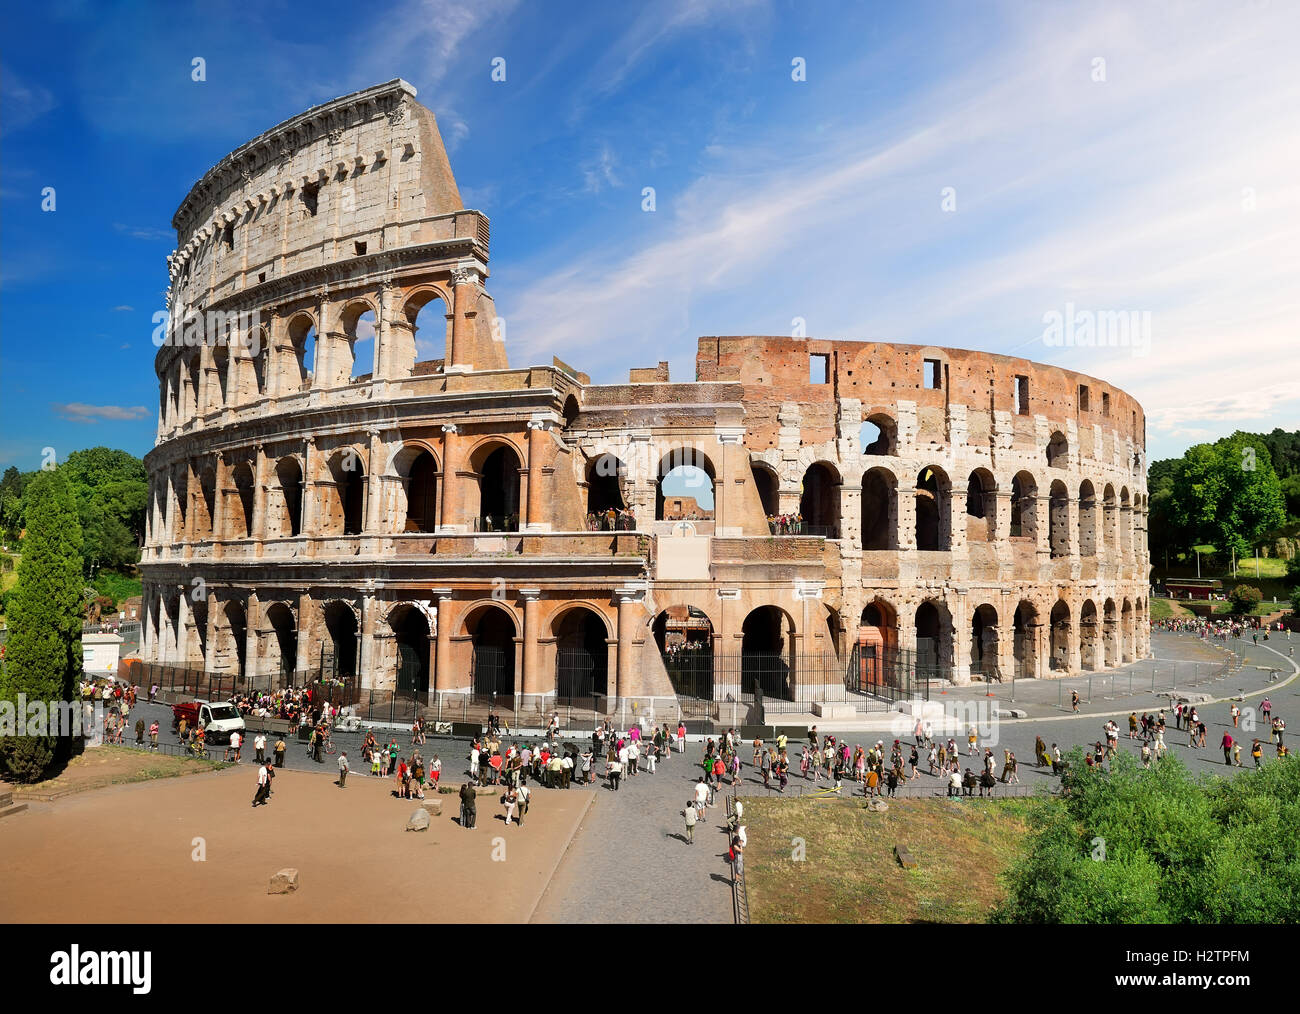 Beautiful roman Colosseum in summer day, Italy - Stock Image